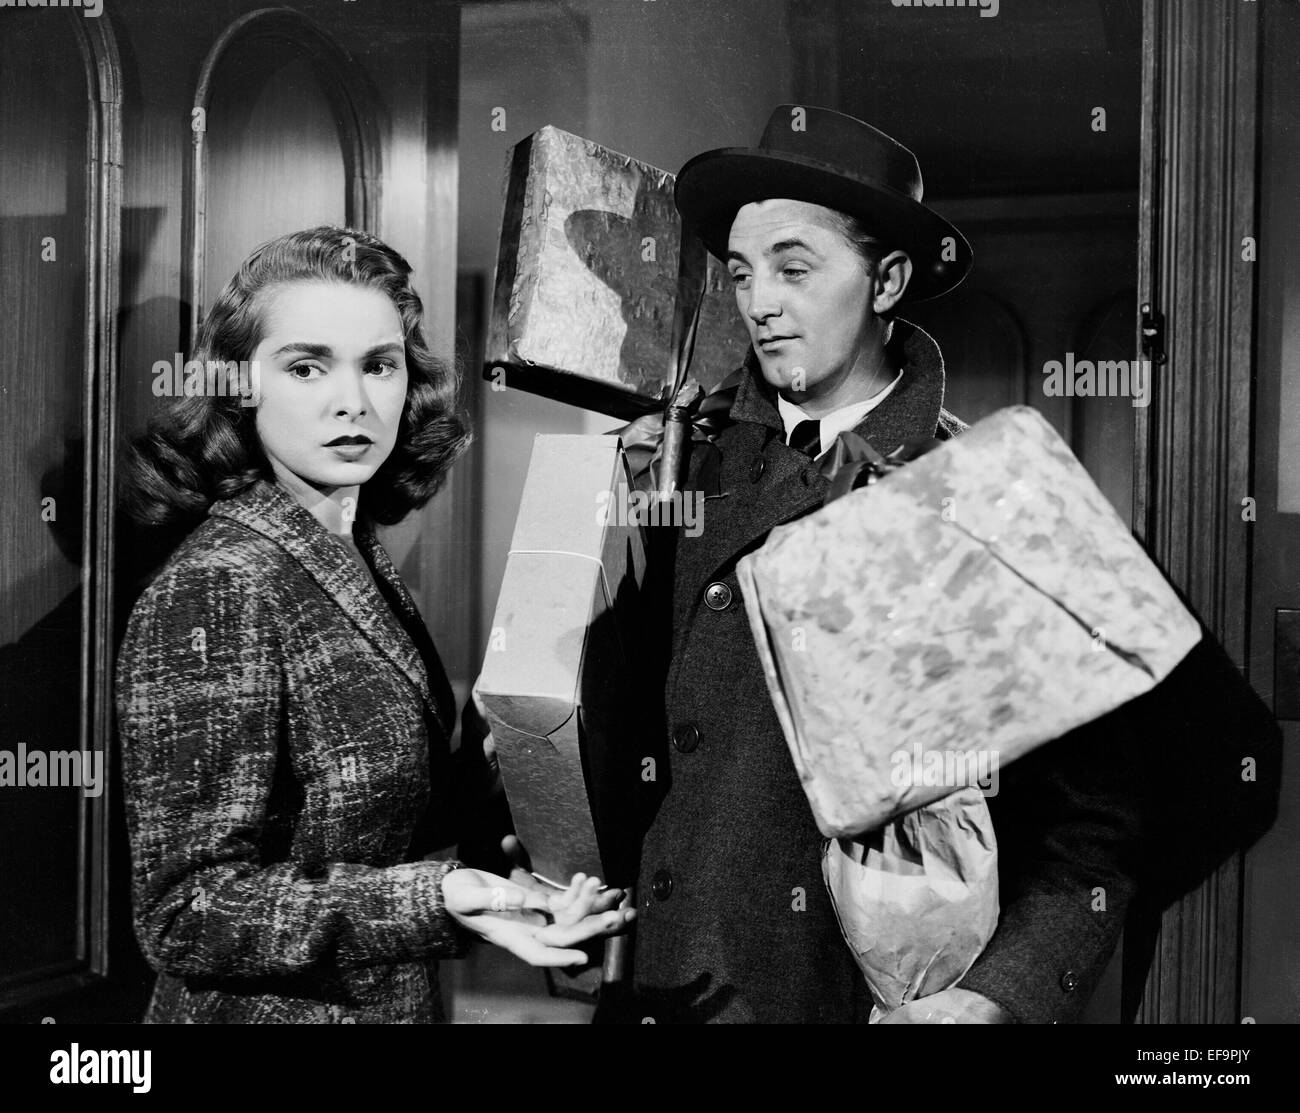 Janet leigh robert mitchum holiday affair 1949 stock Classic christmas films black and white